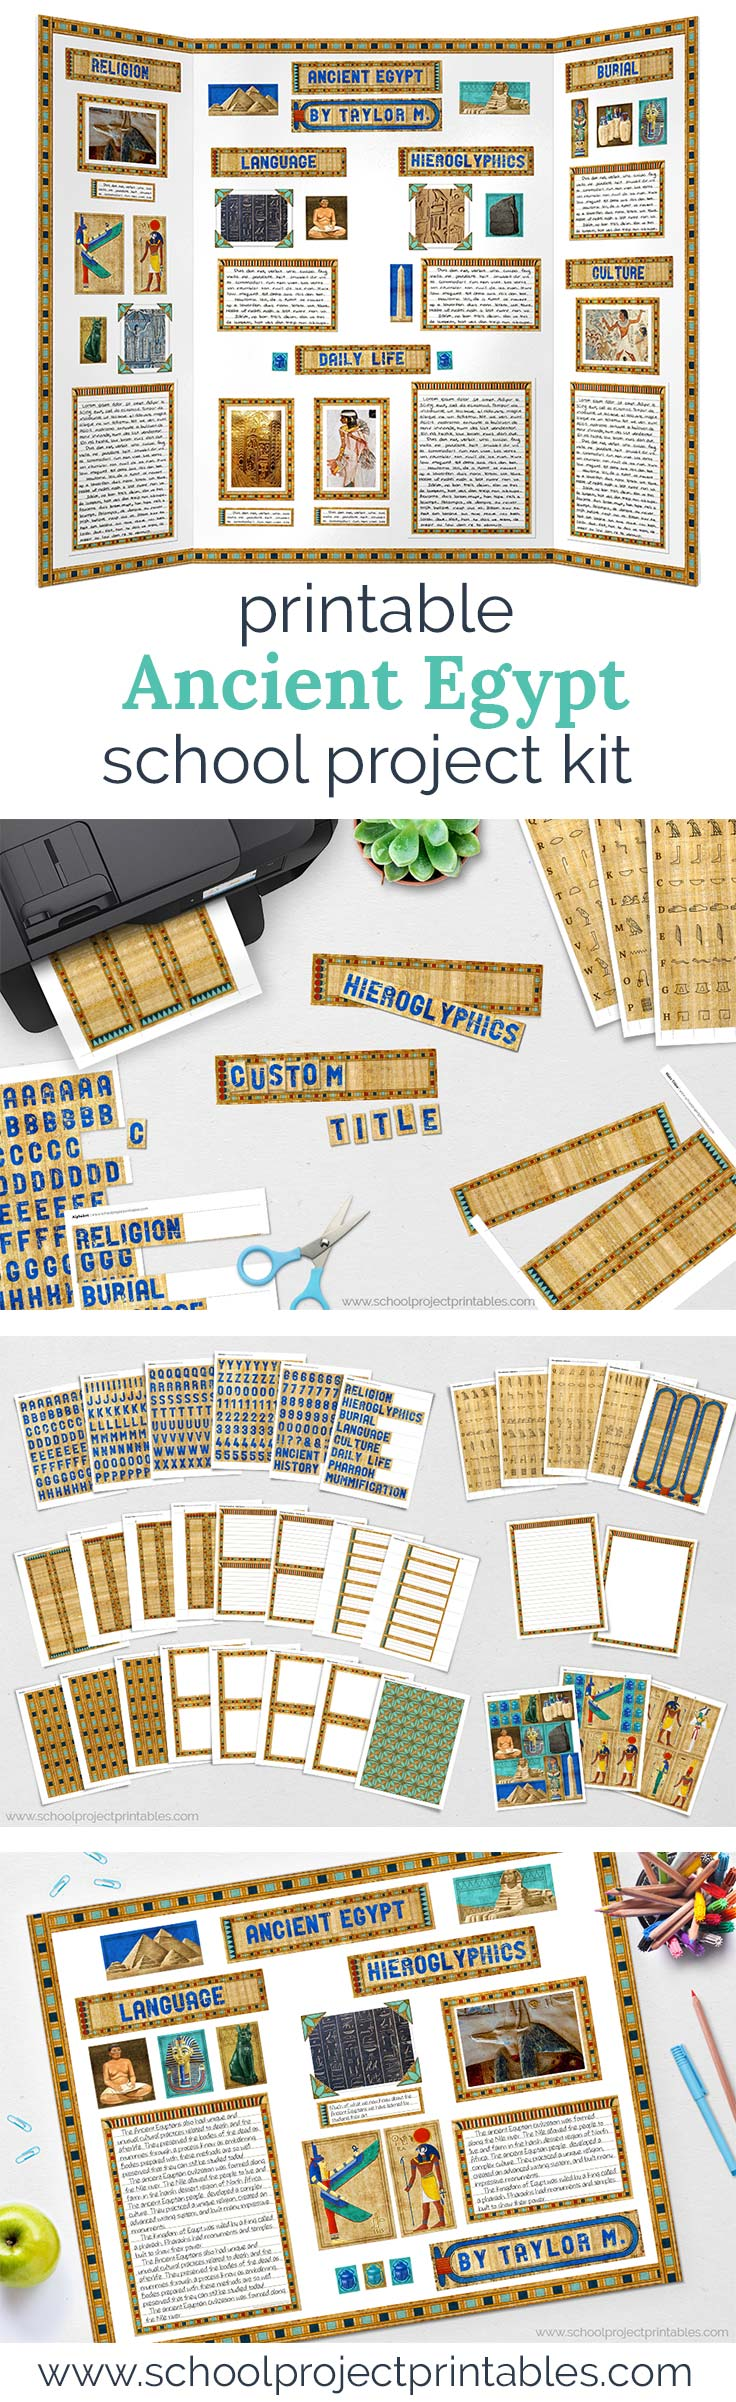 Long Pinterest Pin showing printable kit to make a poster board for an ancient Egypt school project